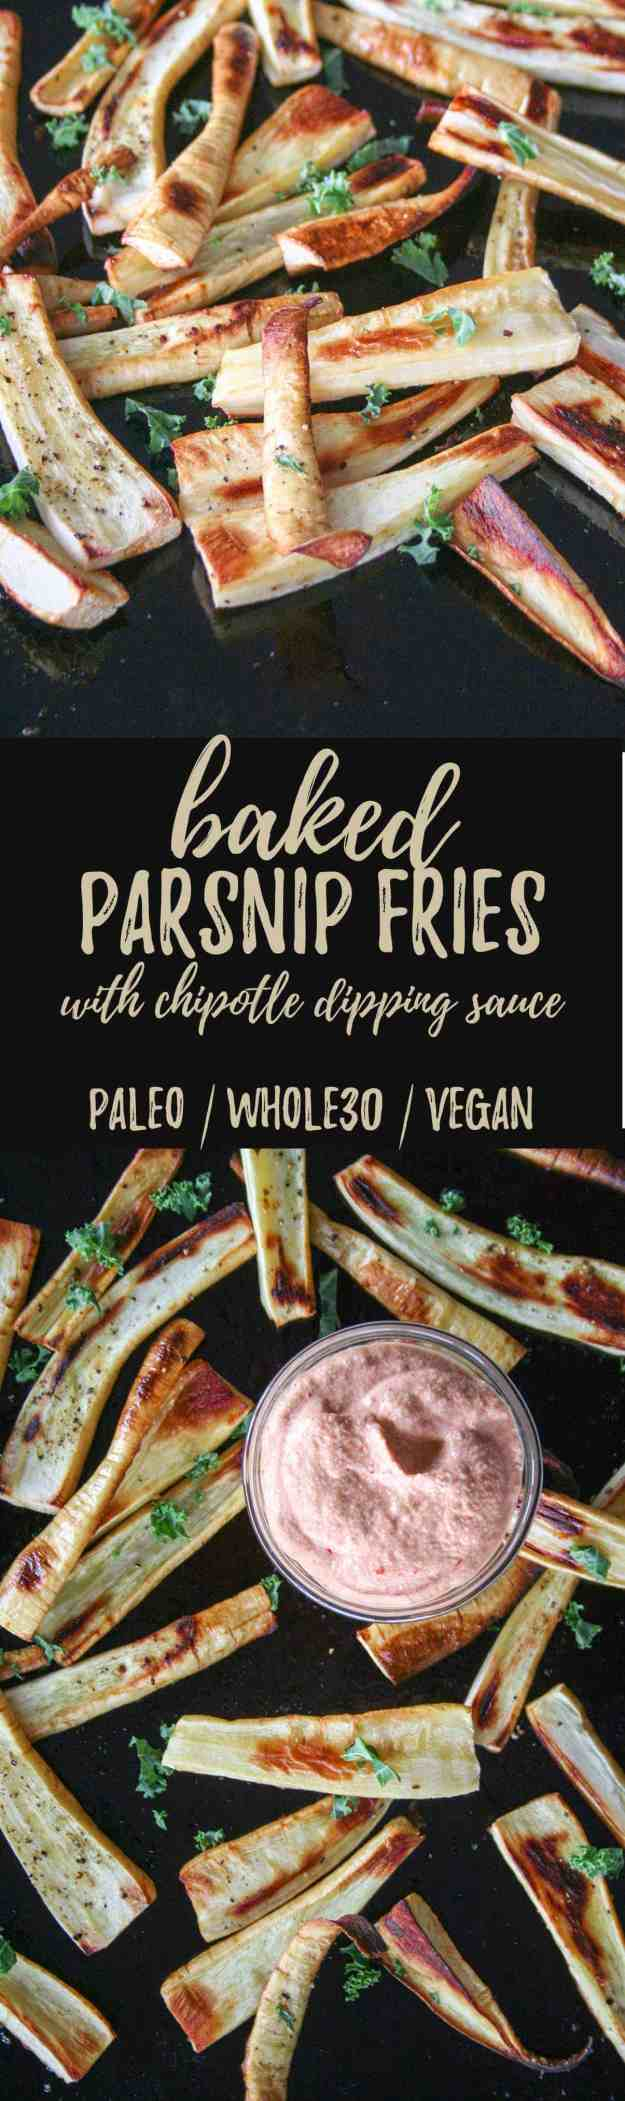 Baked Parsnip Fries with Chipotle Dipping Sauce   Paleo, Whole30, Vegan, easy, healthy, quick, recipe, crispy, gluten free   hungrybynature.com